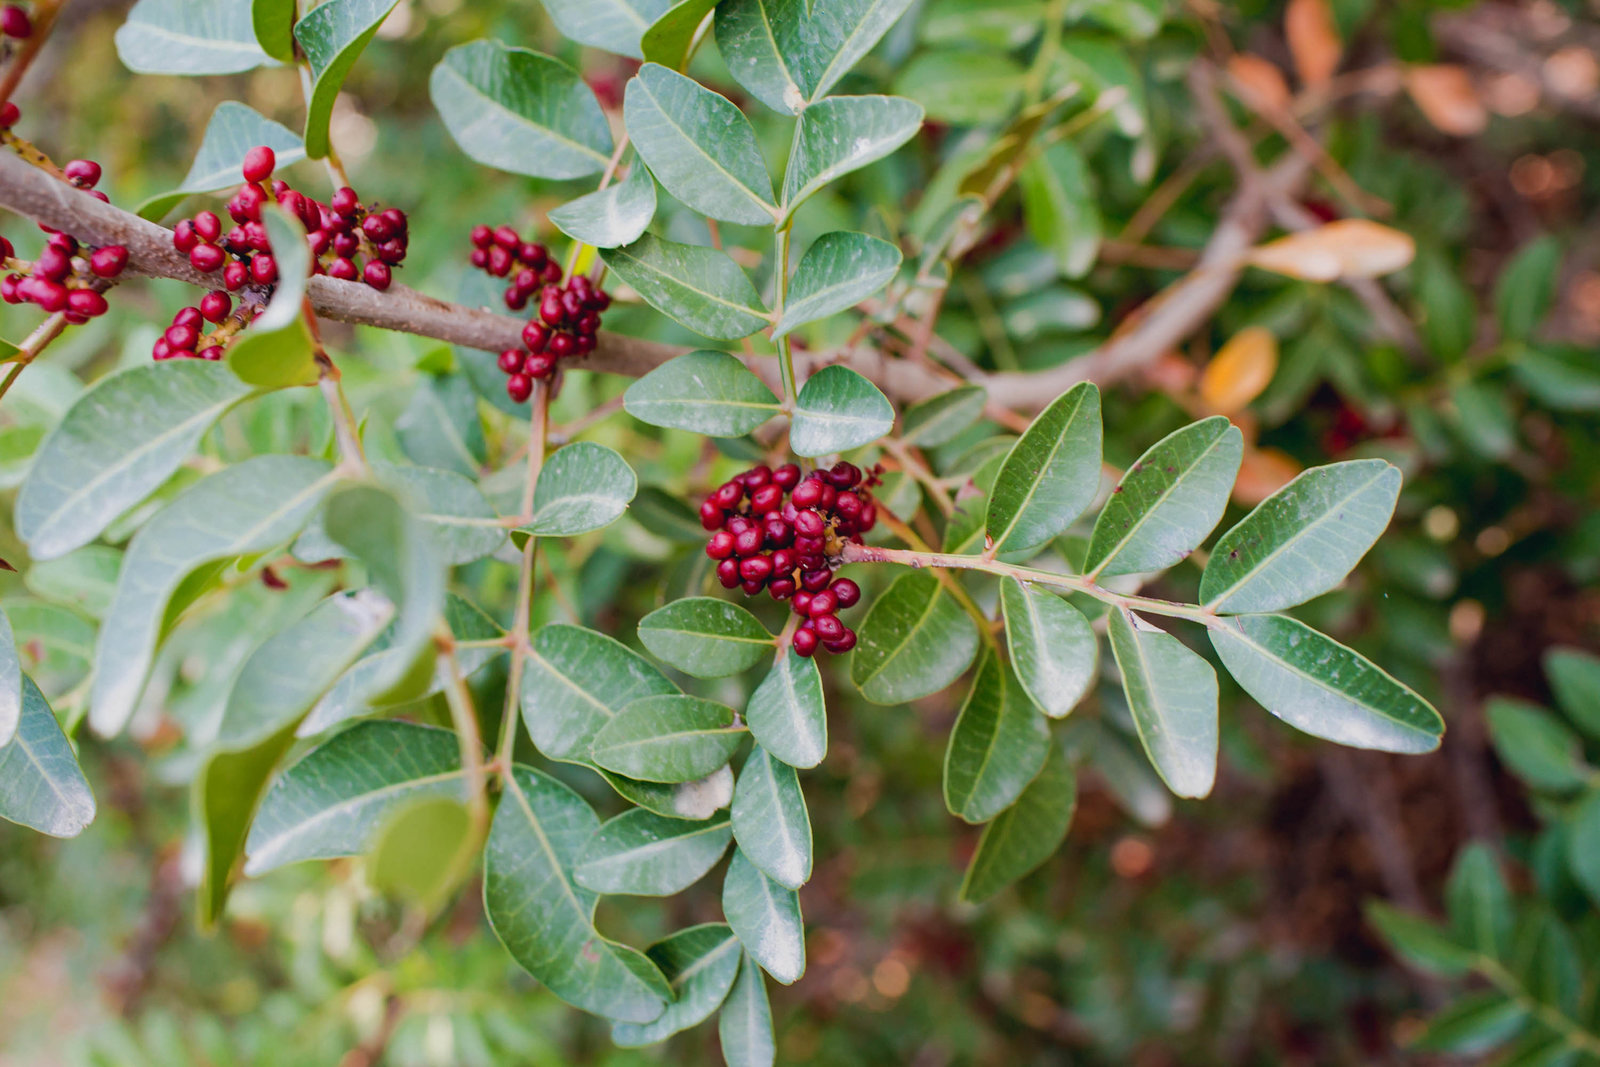 wild-red-berry-athens-greece-travel-kate-timbers-photography-871